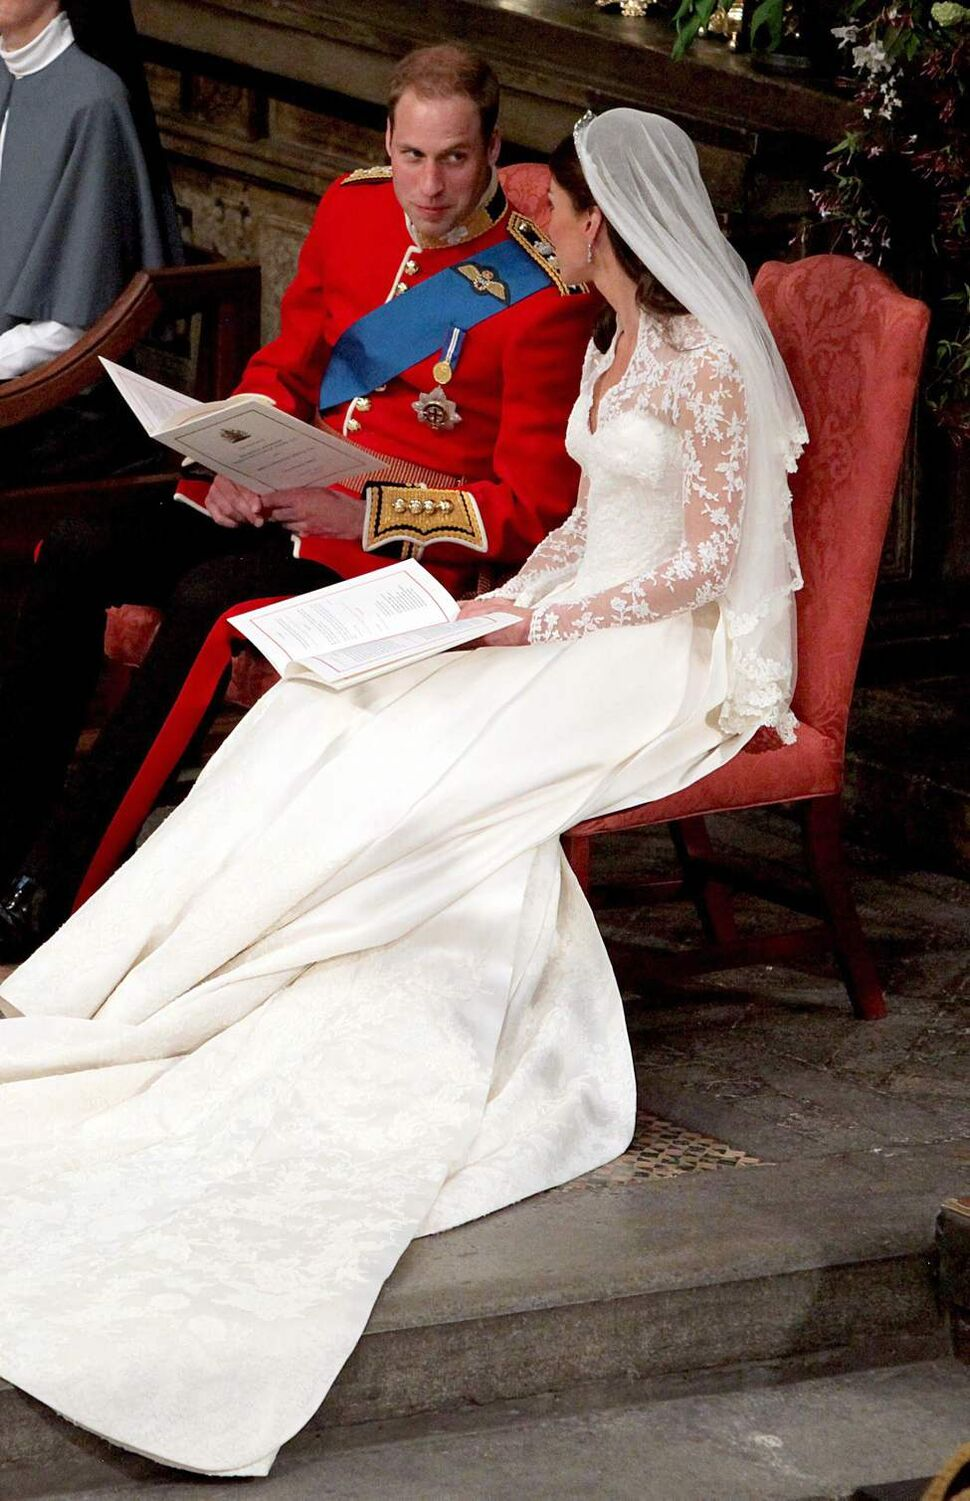 Britain's Prince William and Kate Middleton at Westminster Abbey, London, during their wedding service, Friday April 29, 2011. (AP Photo/Anthony Devlin, Pool) (CP)